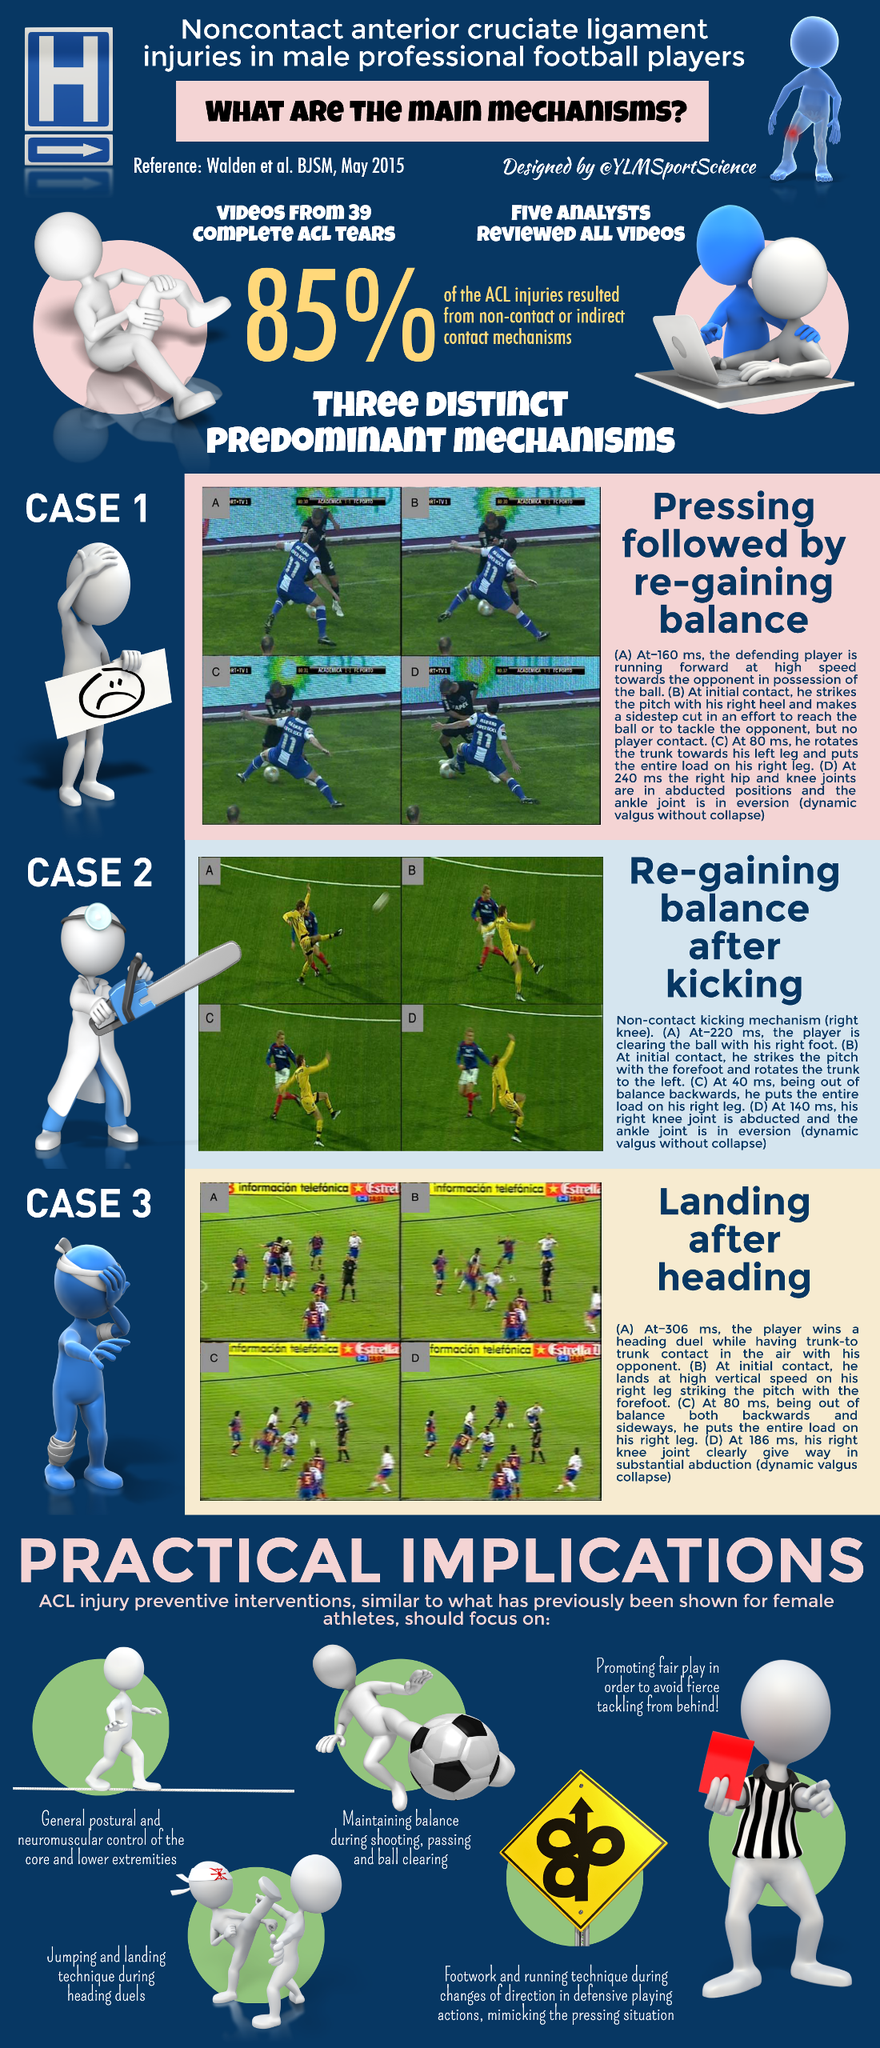 🚨 Main mechanisms for ACL tear in ♂ soccer ⚽️ ▶️ Regaining balance after pressing/kicking ▶️ Landing after heading https://t.co/15MhKBh4L9